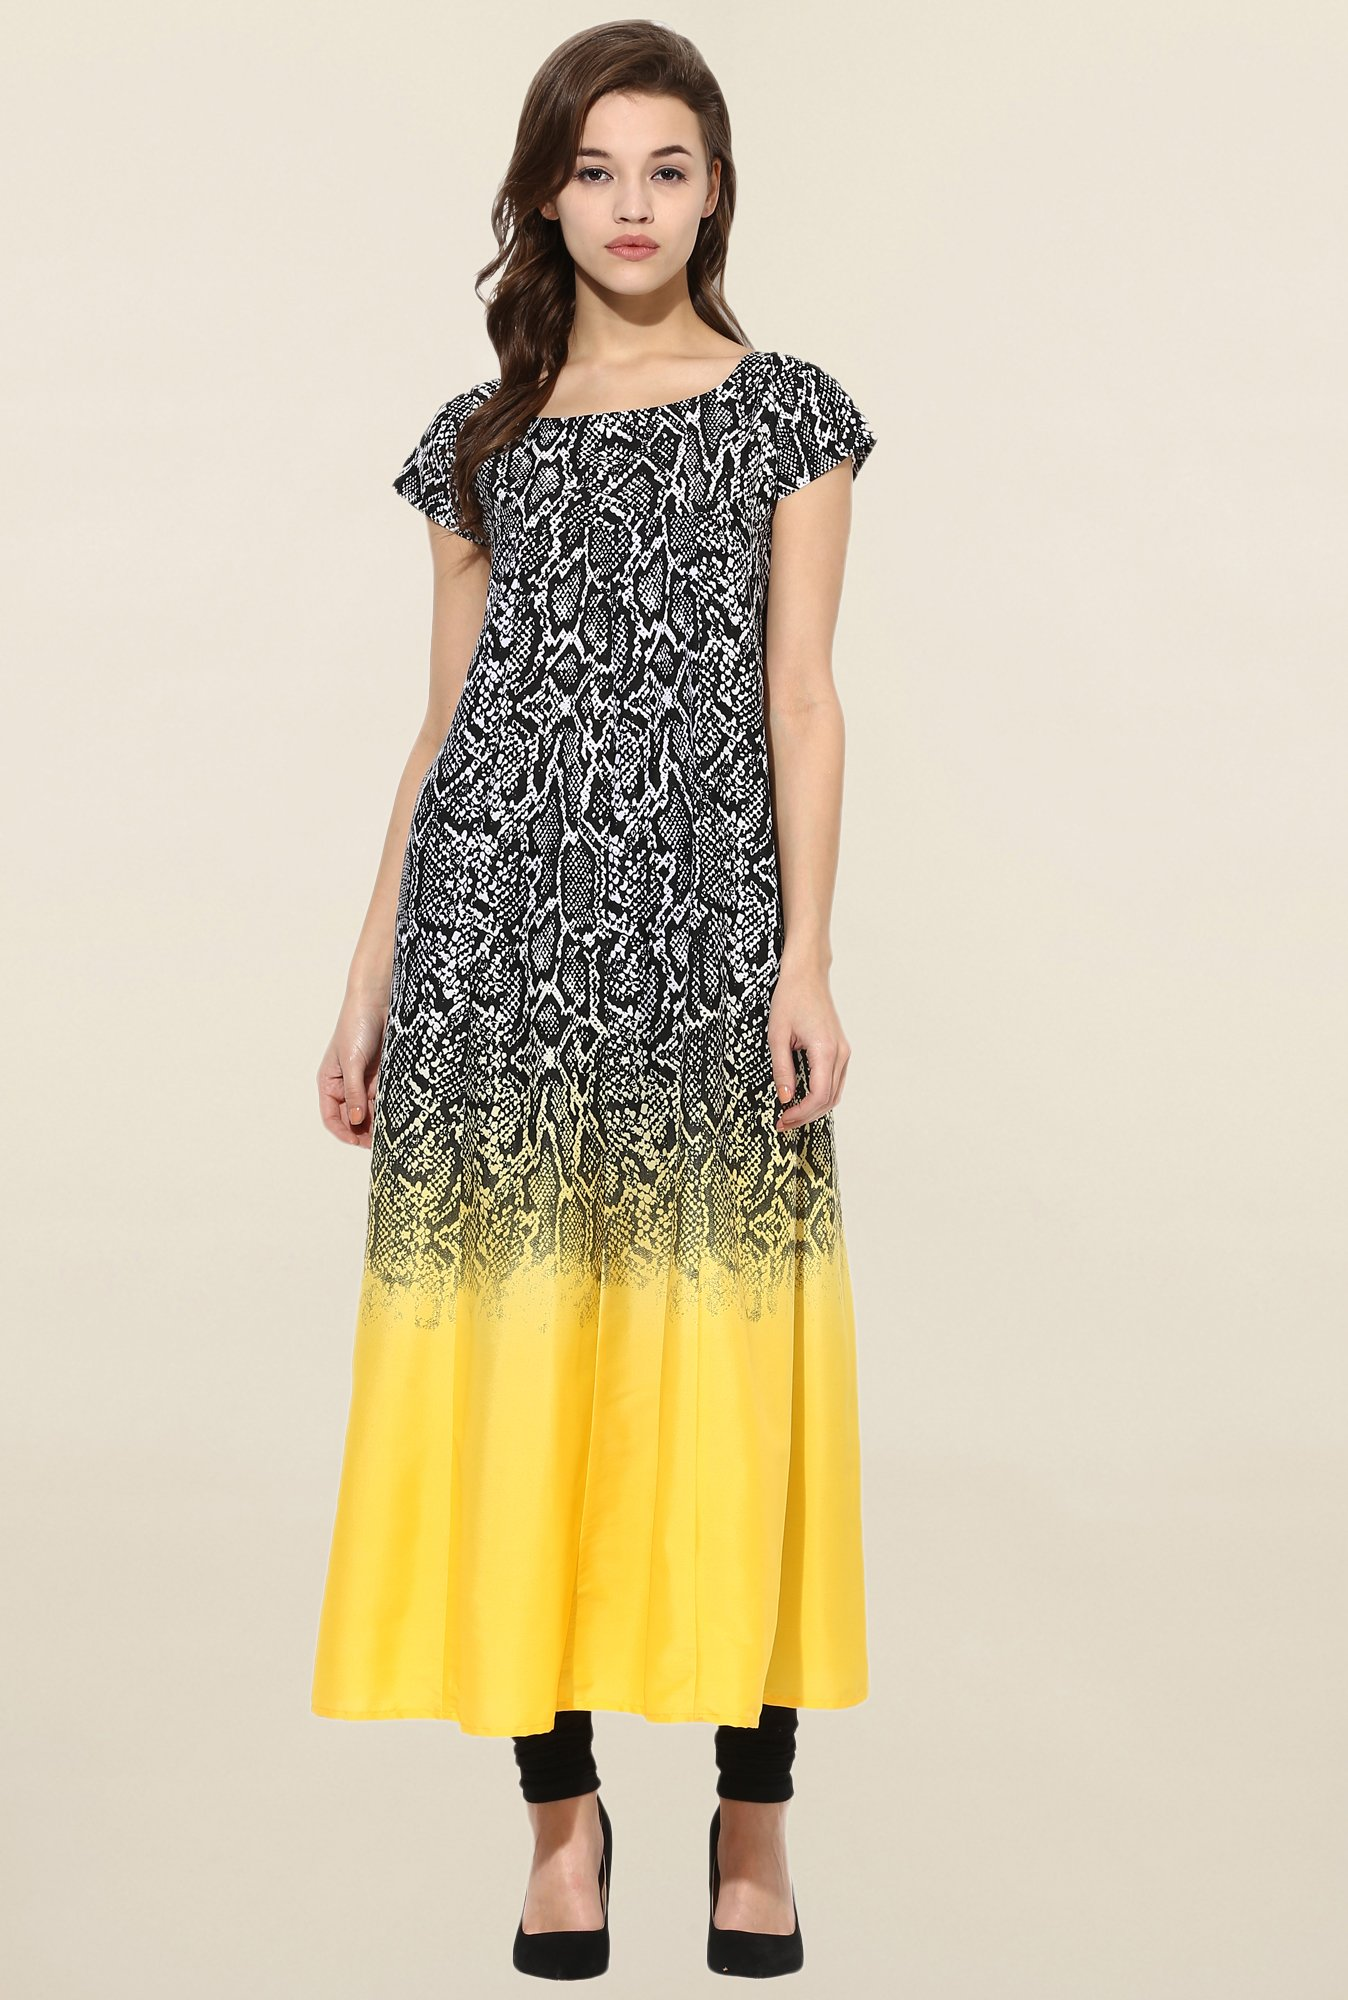 Ahalyaa Black & Yellow Printed Anarkali Kurta